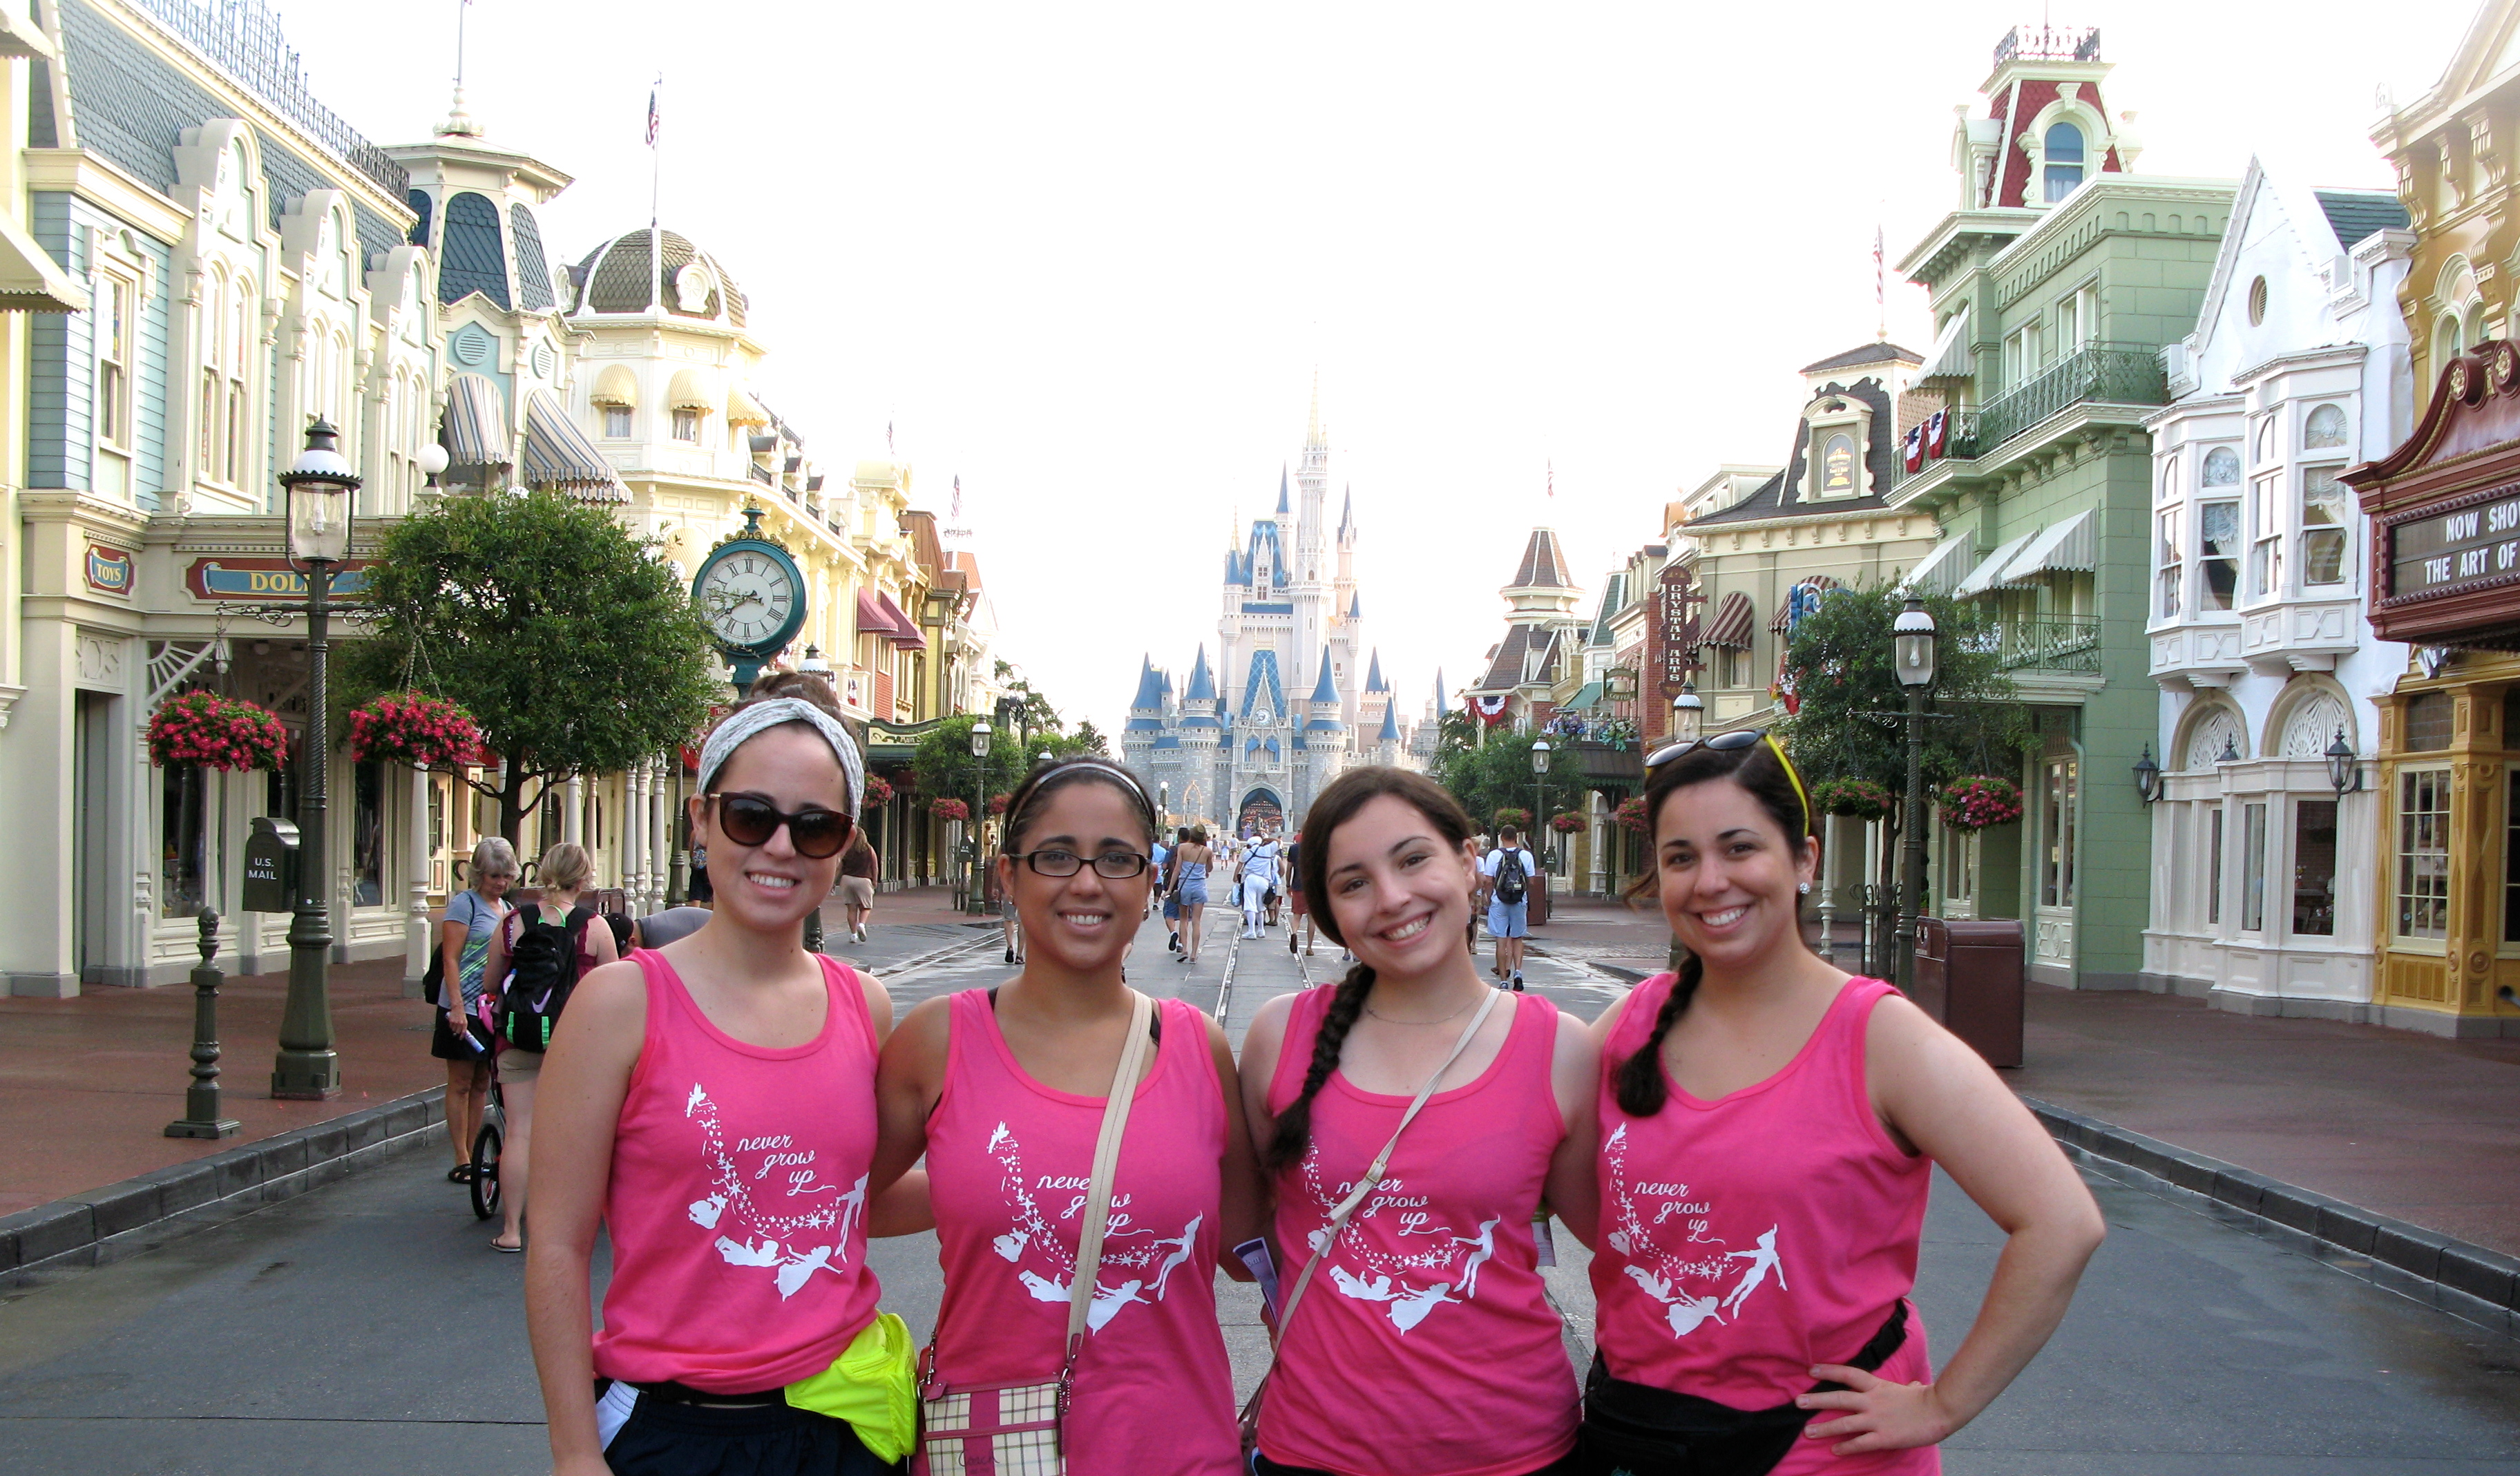 Hannah and her sisters in front of Cinderella's Castle in their matching tanks!